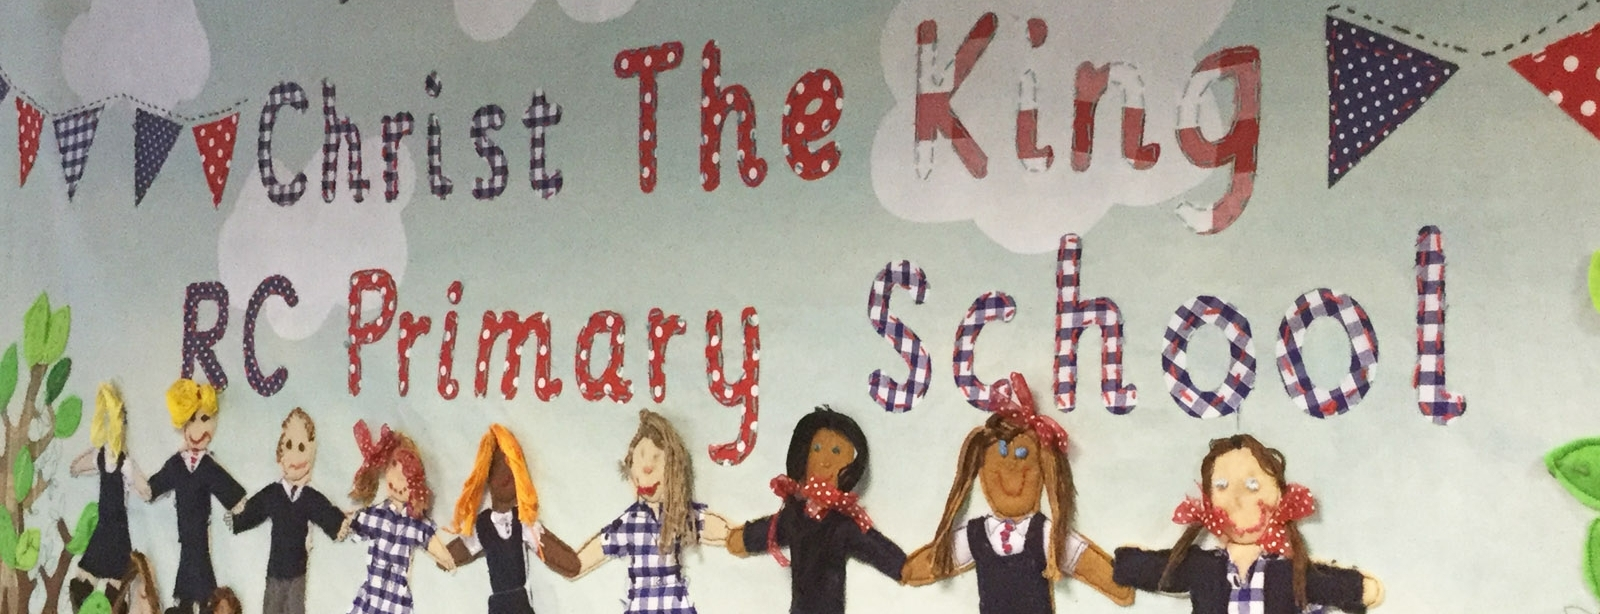 christ the king school banner with artwork